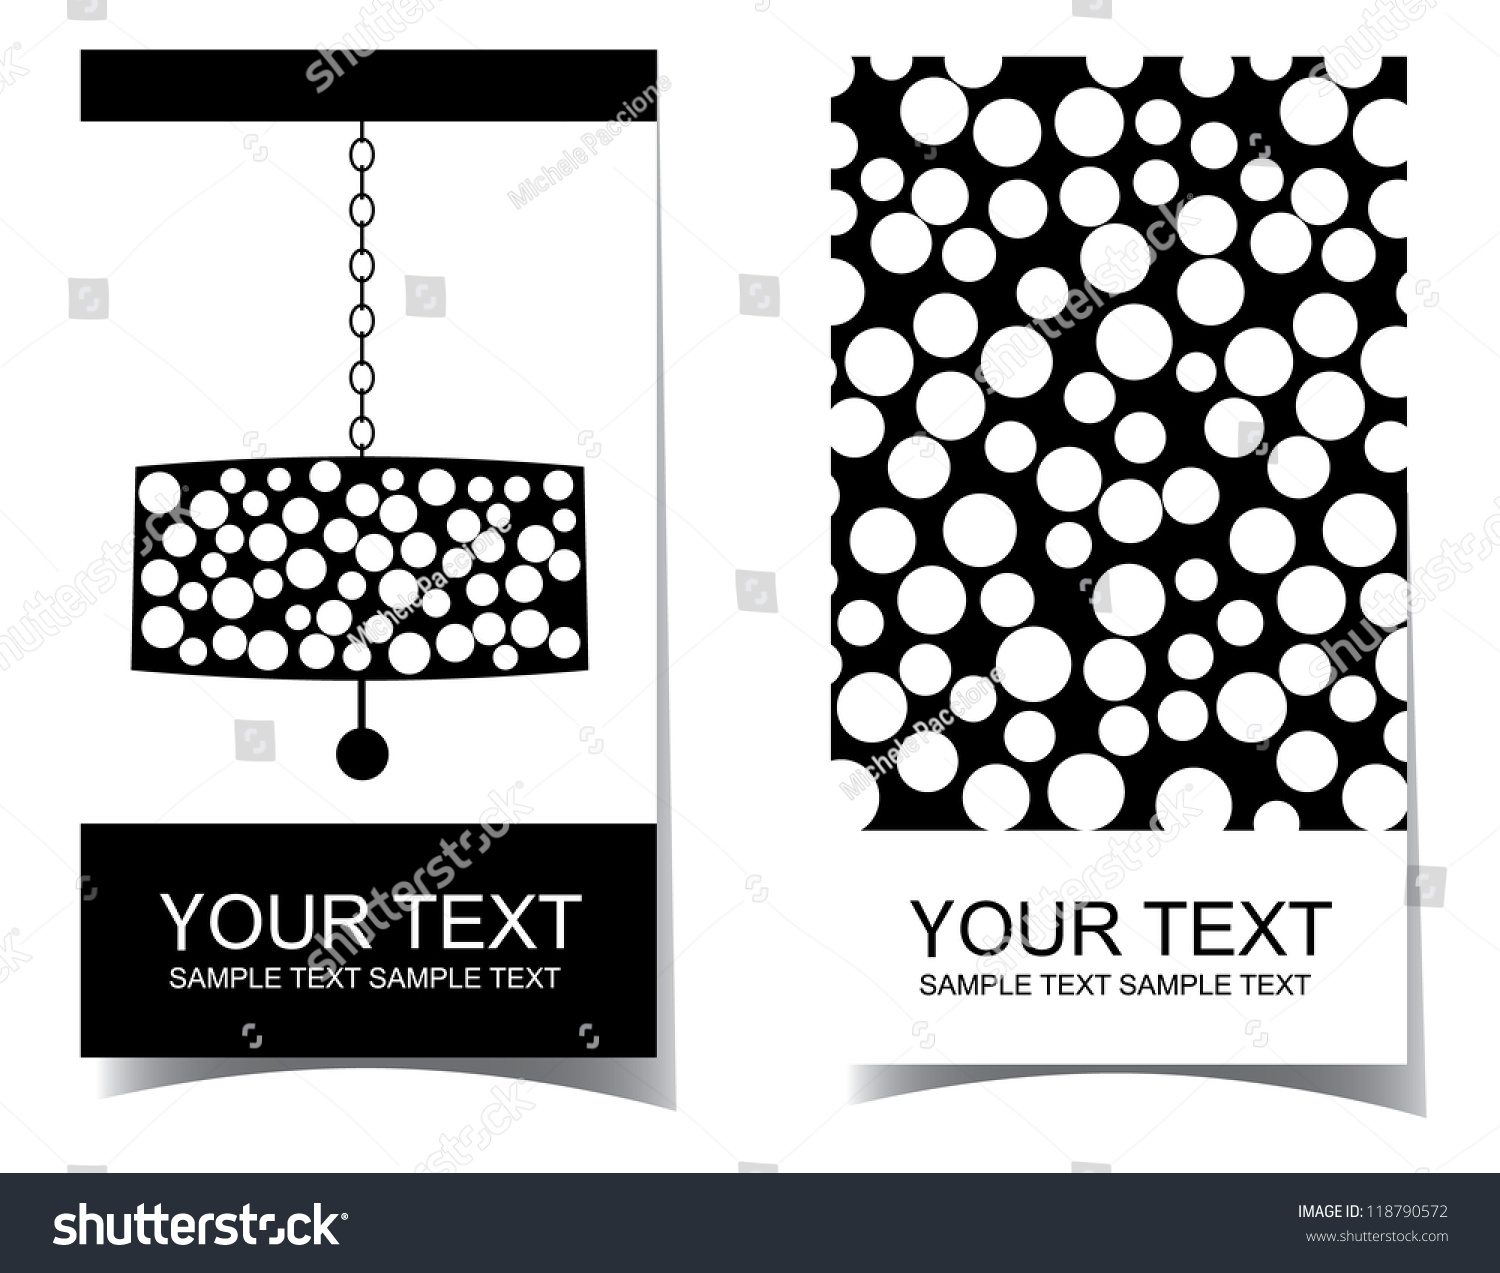 Chandelier Interior Design Business Card Set Stock Vector ...